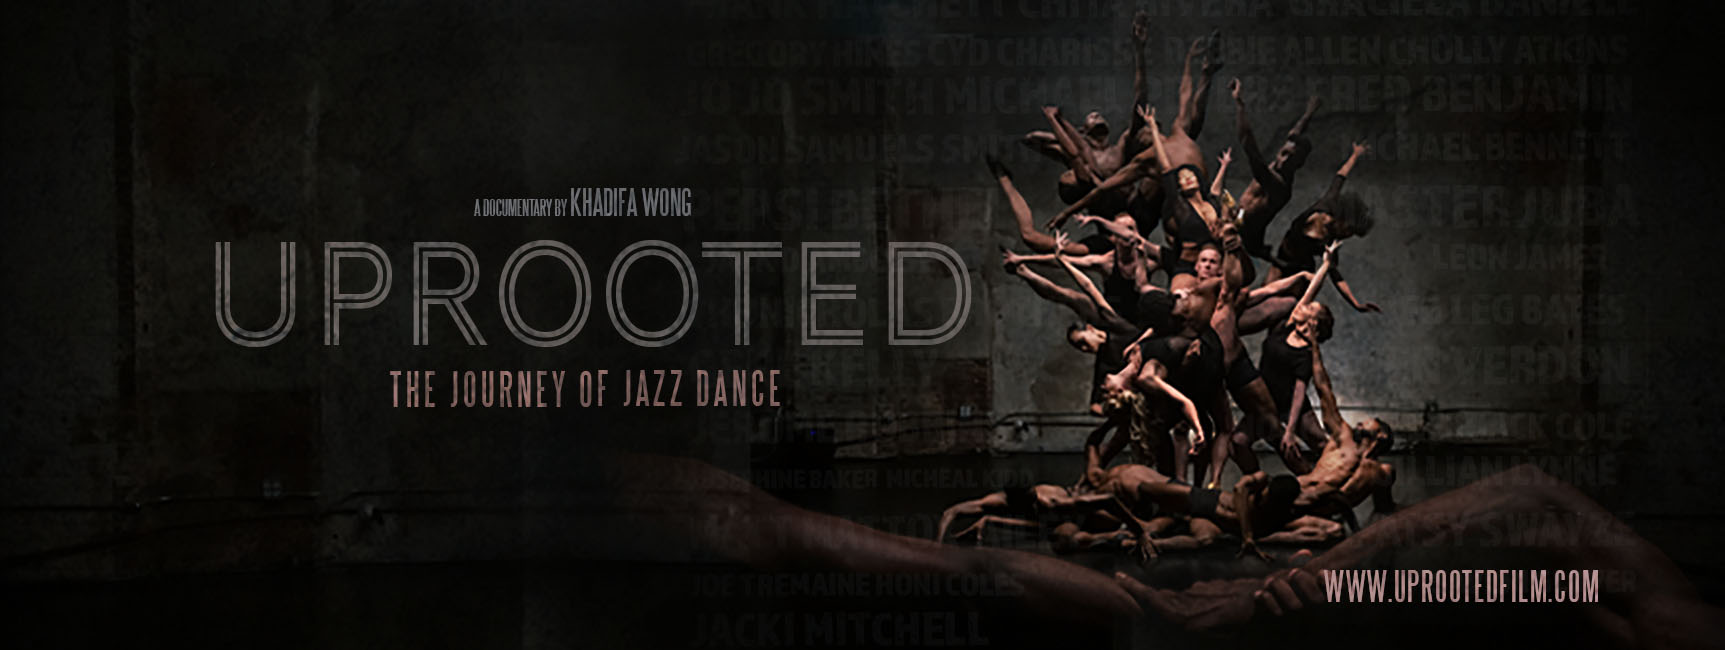 Poster of the documentary Uprooted